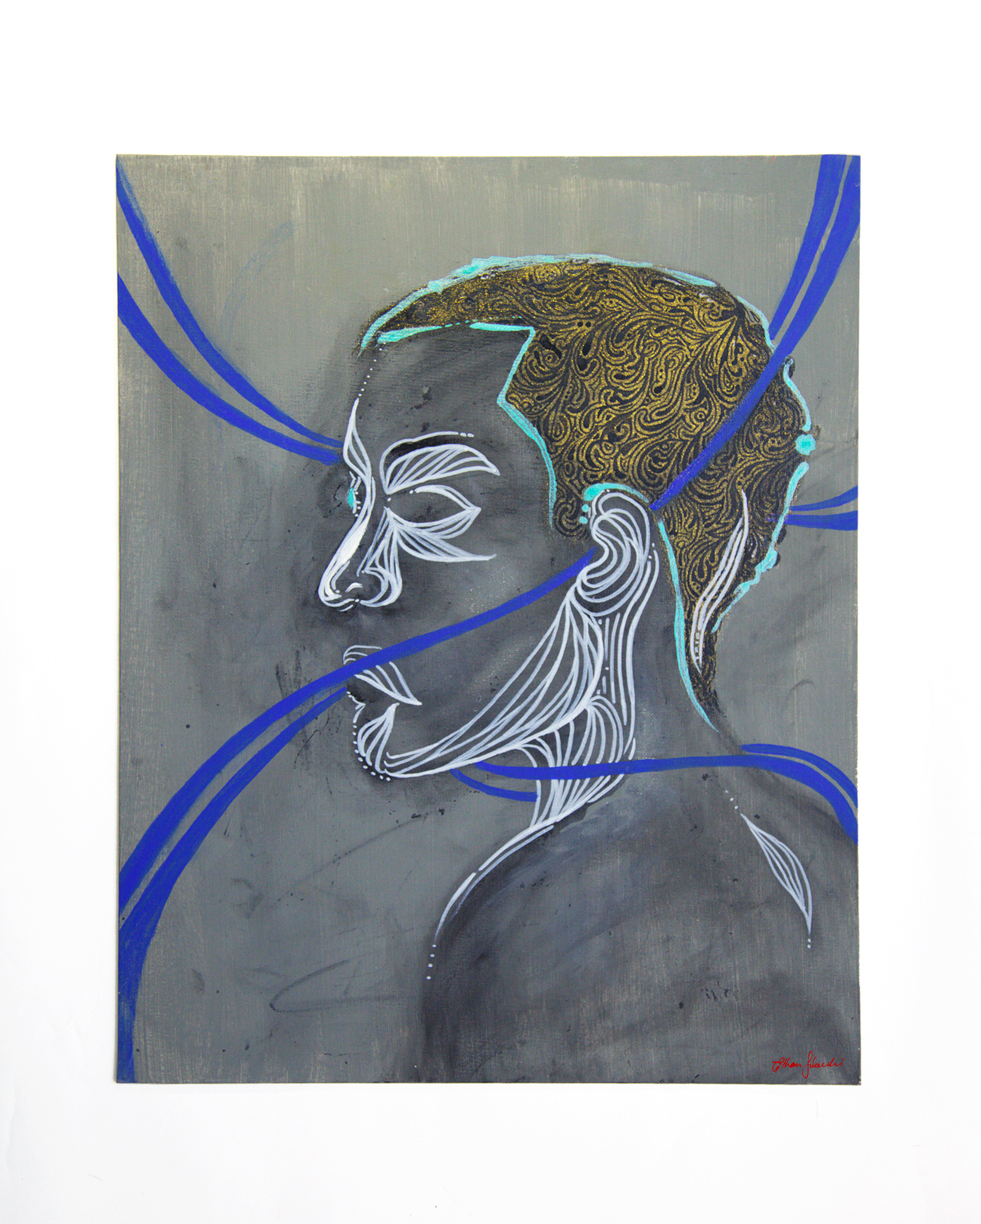 Self-portrait-ethan-solouki-abstract-los-angeles-painting